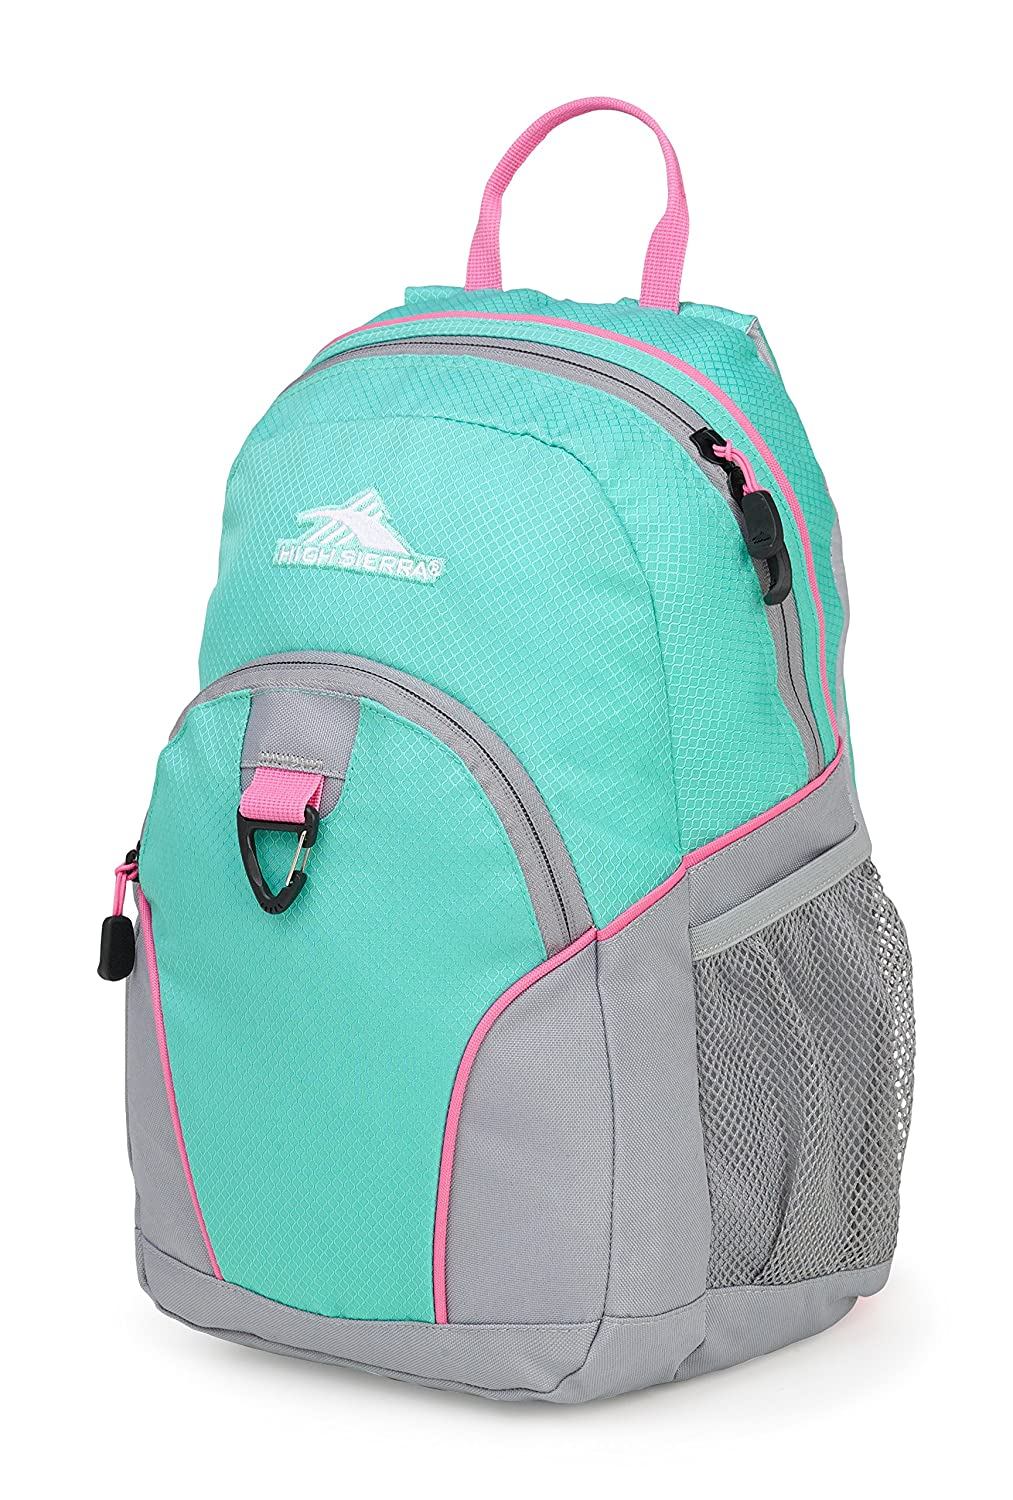 High Sierra Mini Loop Backpack